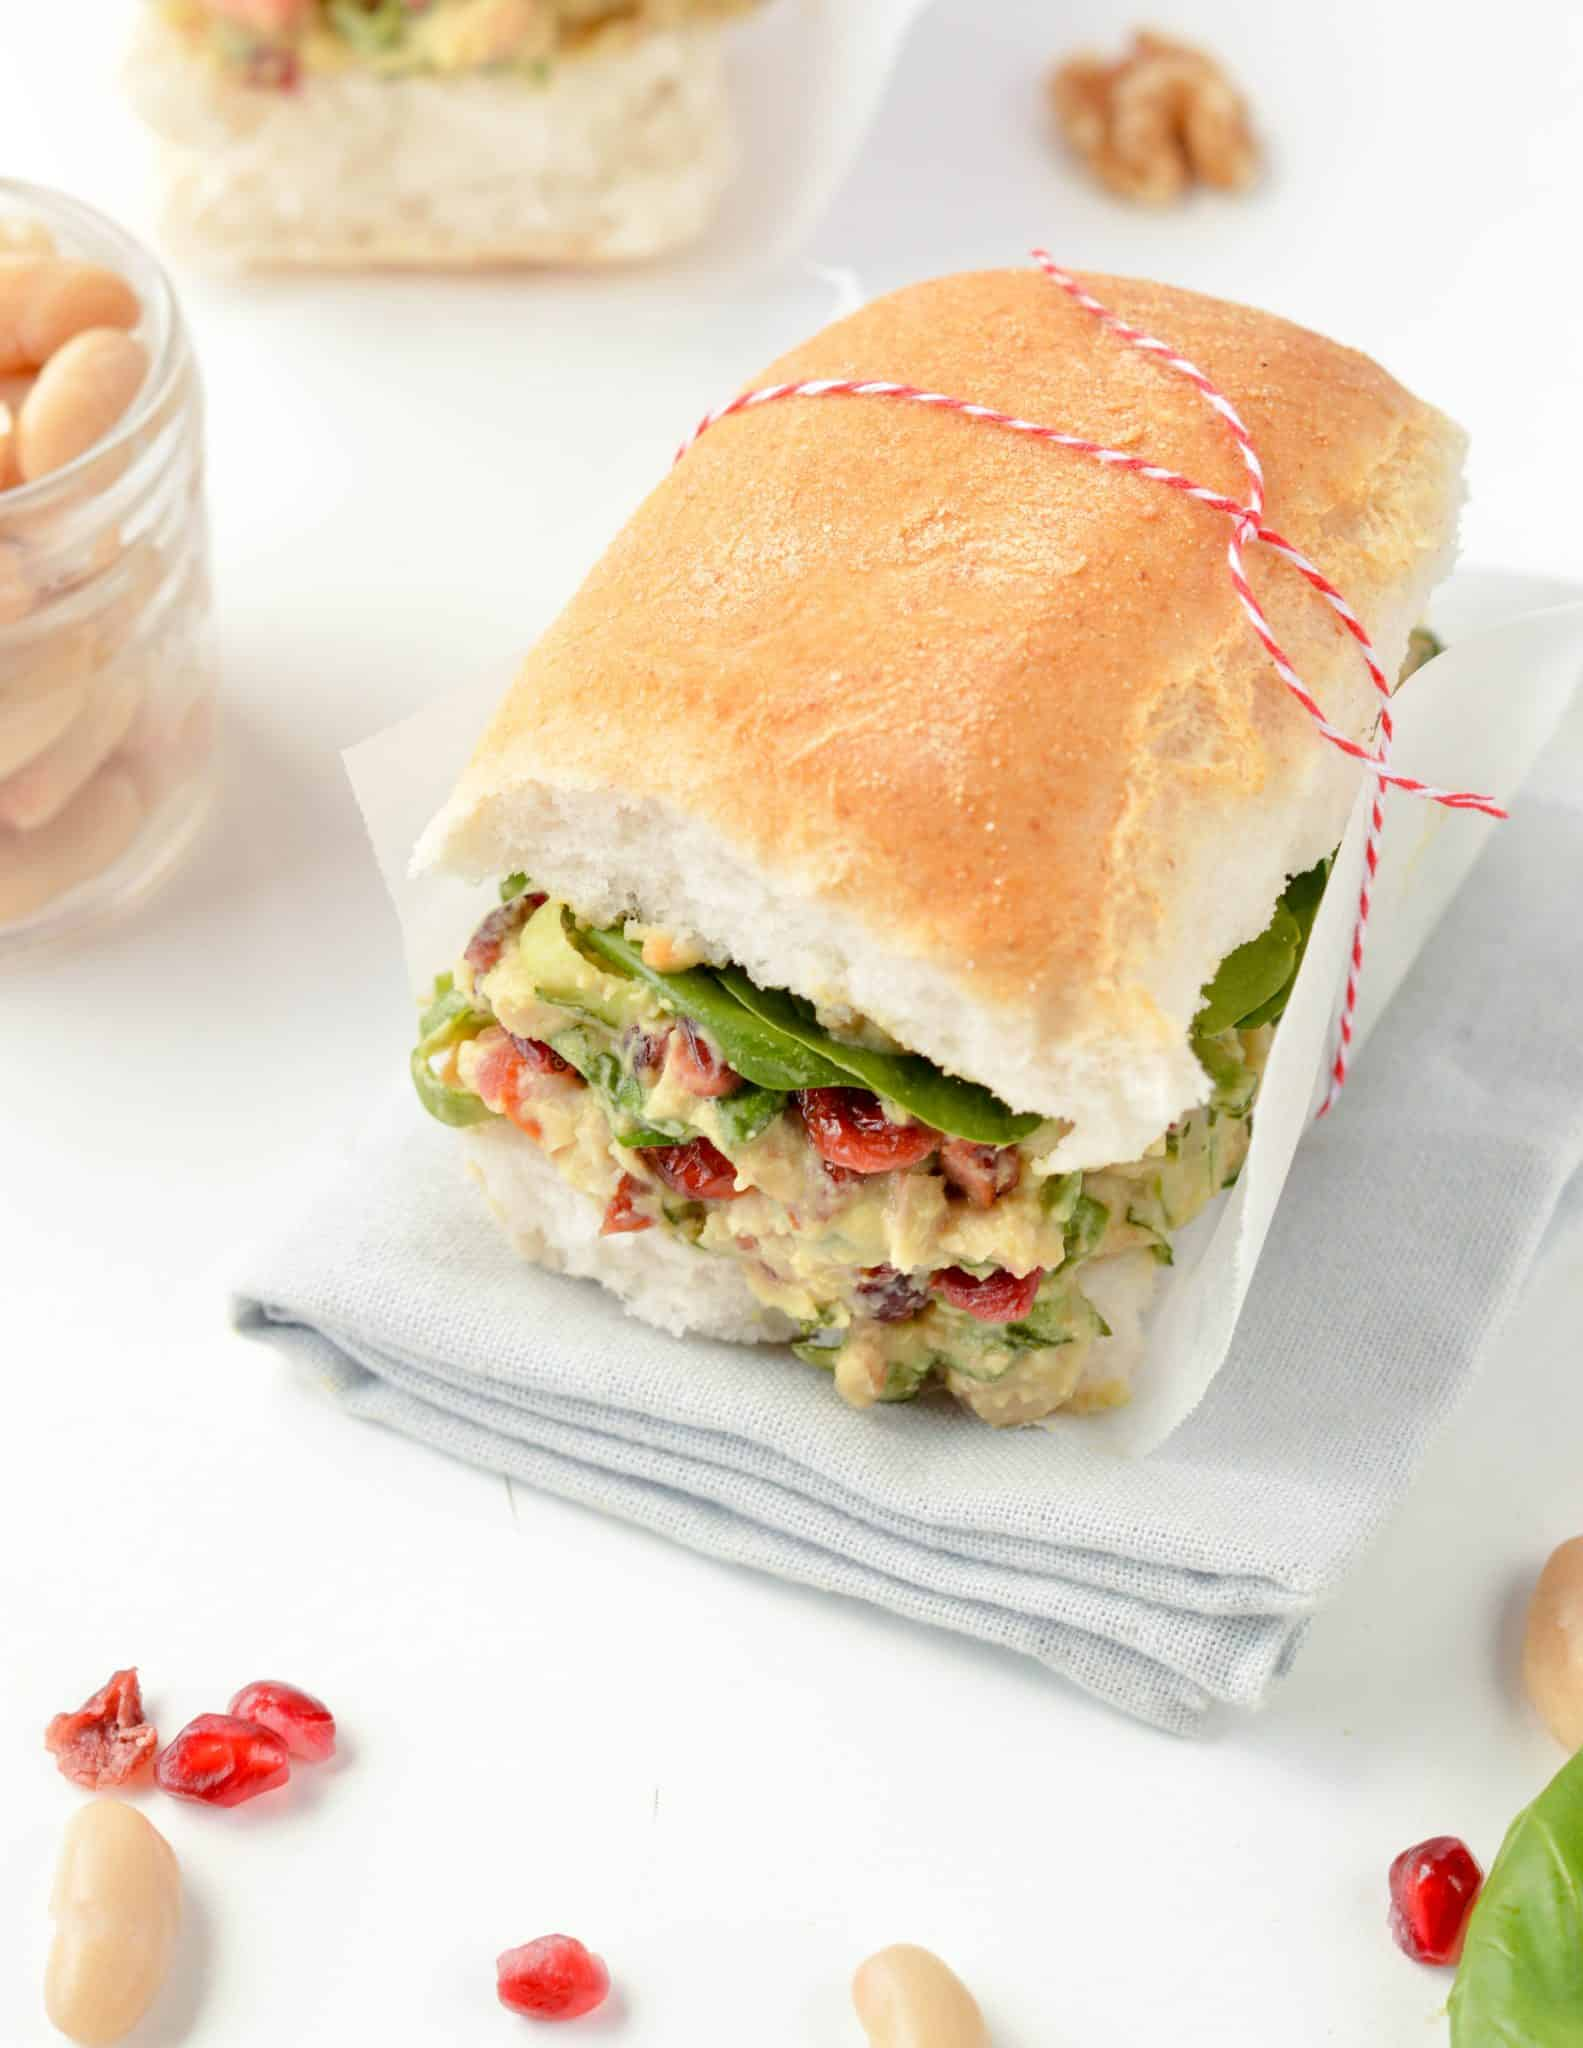 White Bean Sandwich with Cranberries, Walnuts and Basil in a creamy Tahini Mustard Dressing. An healthy vegan gluten free sandwich with Christmas colors perfect to bring on the beach for post Christmas detox lunches.